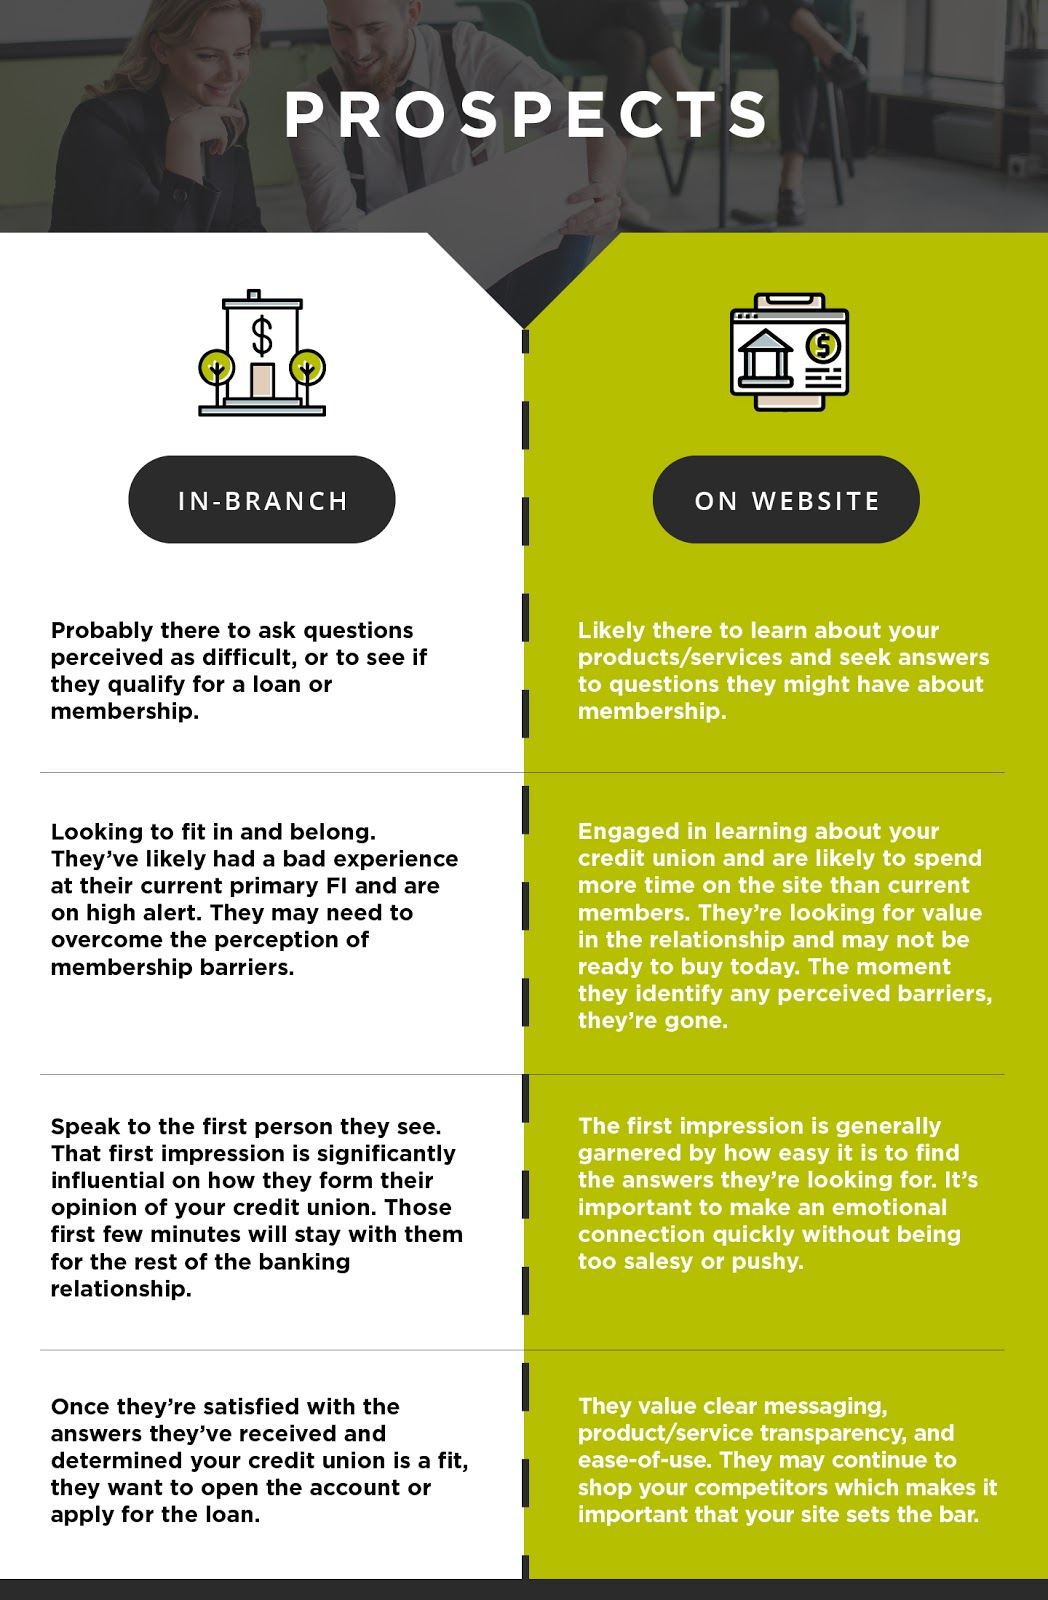 How prospects use your branch vs your website.